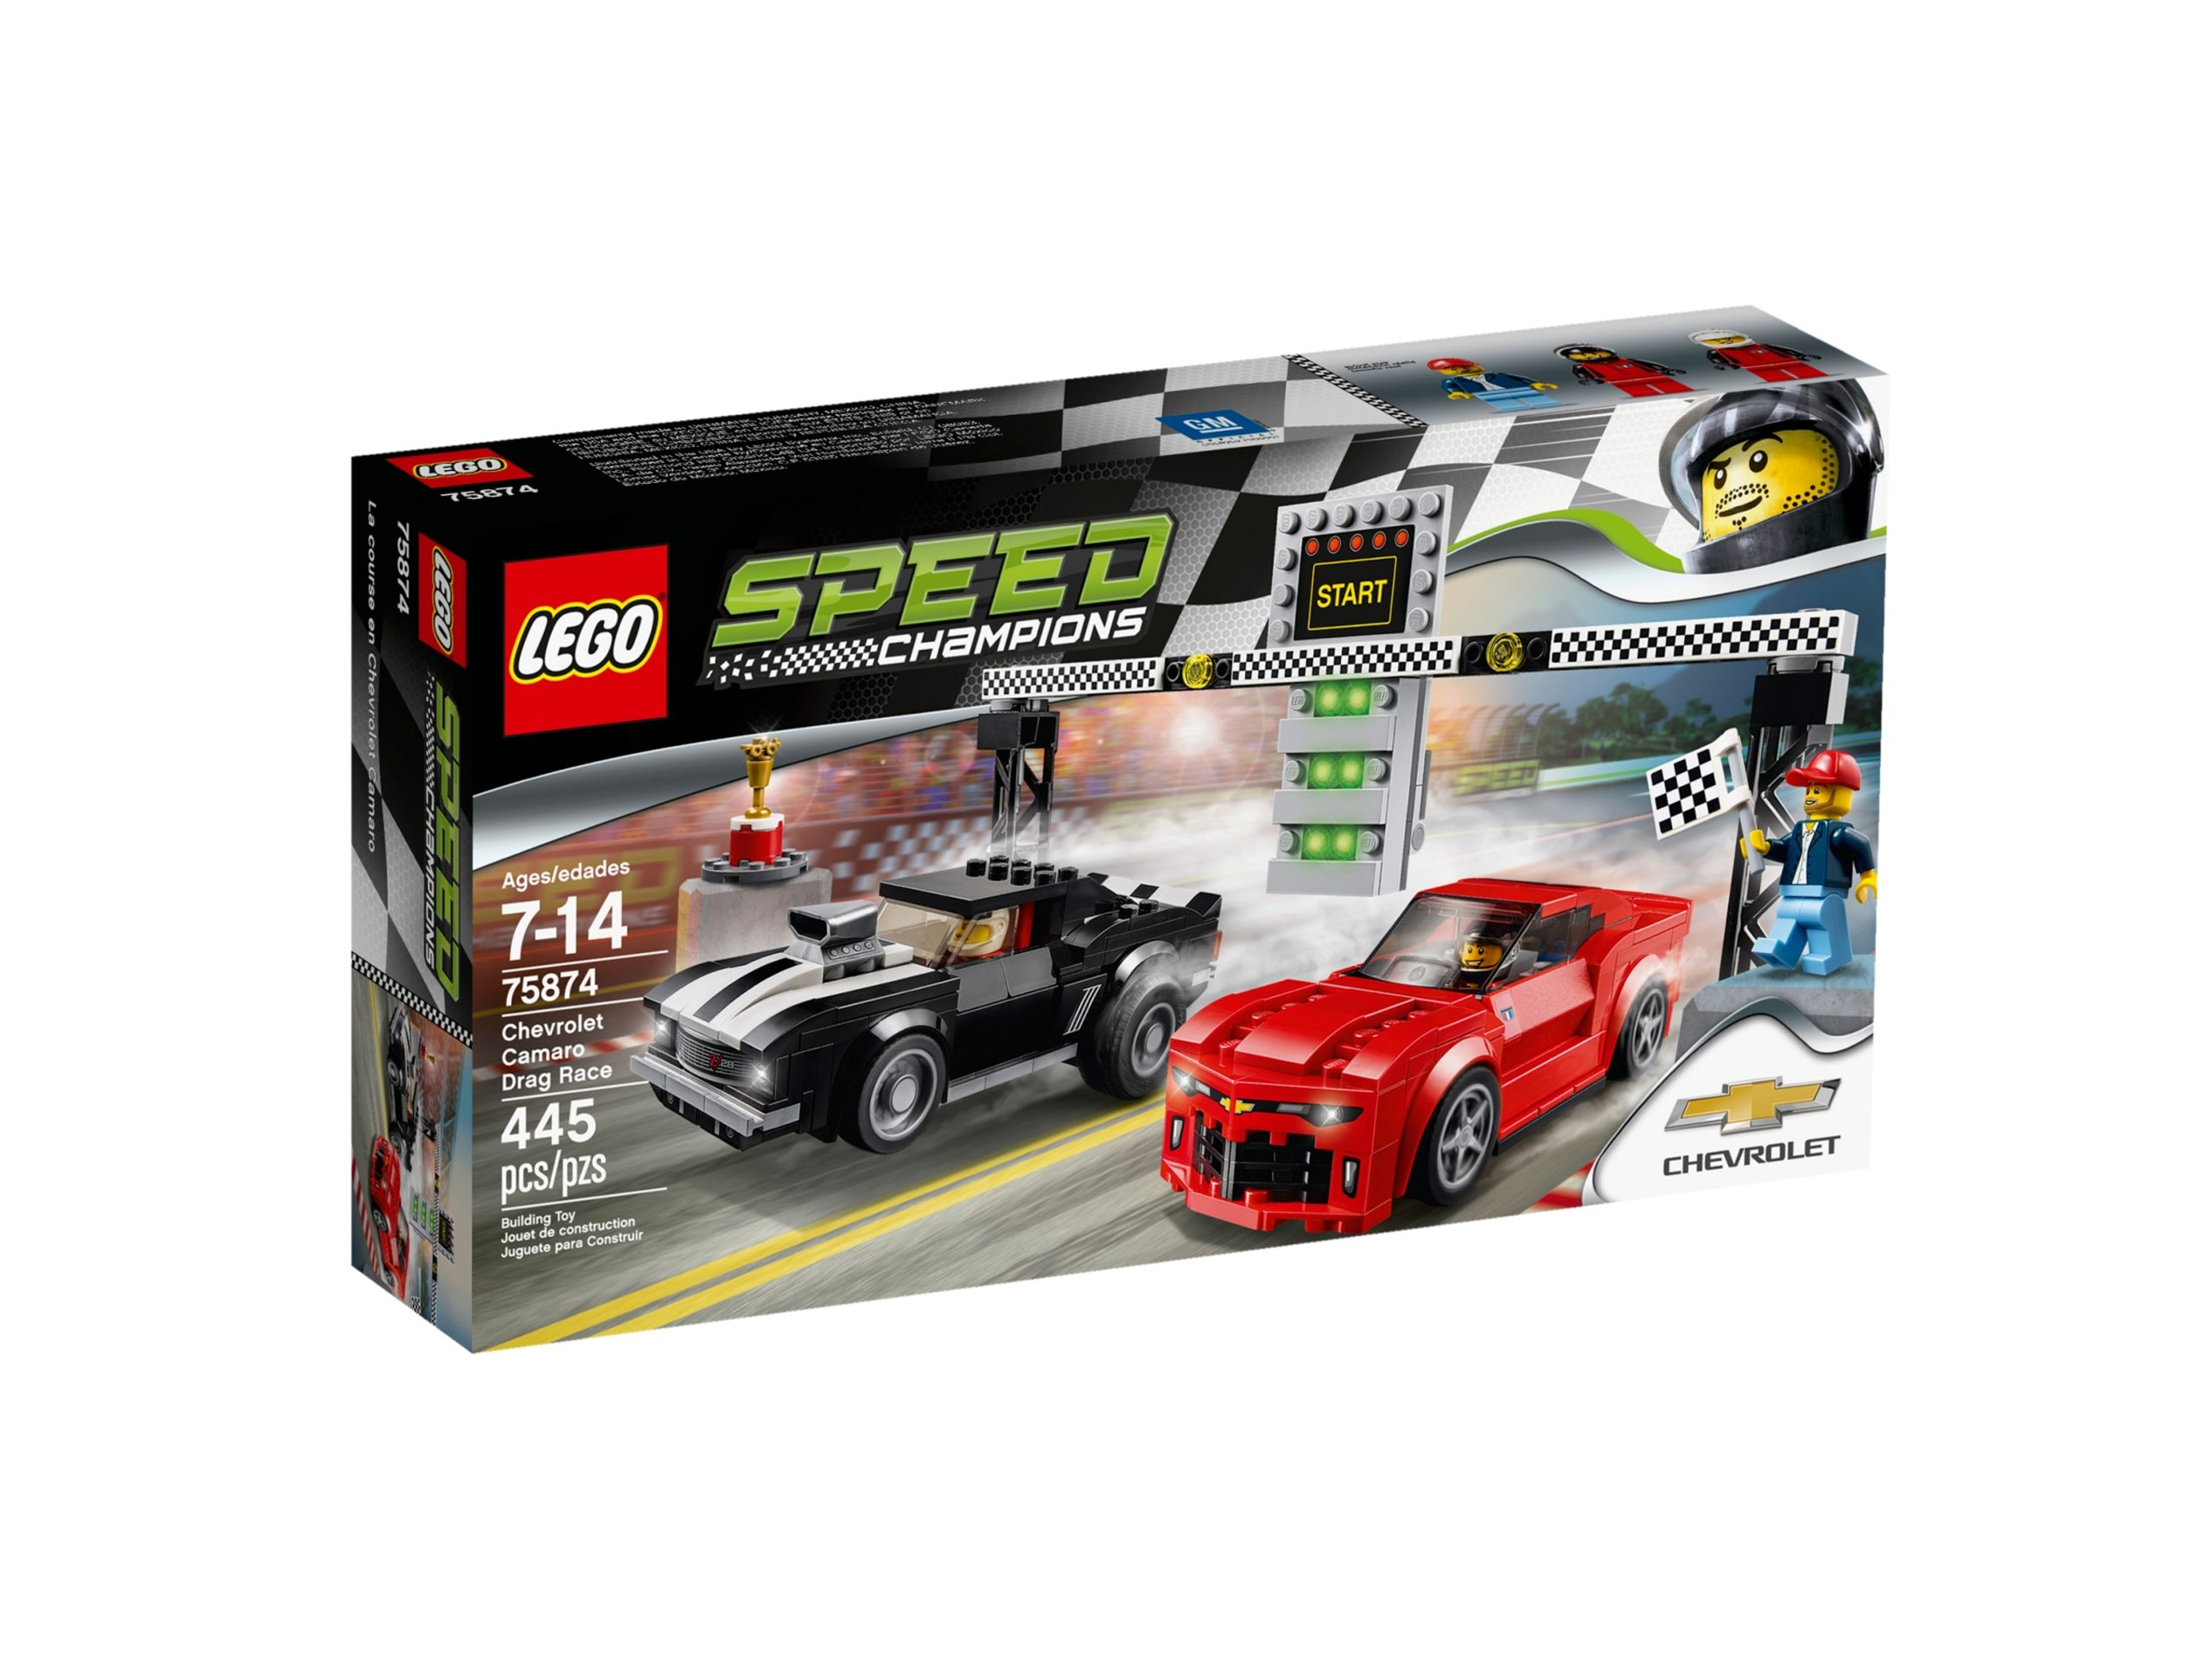 lego 75874 chevrolet camaro drag race scaled